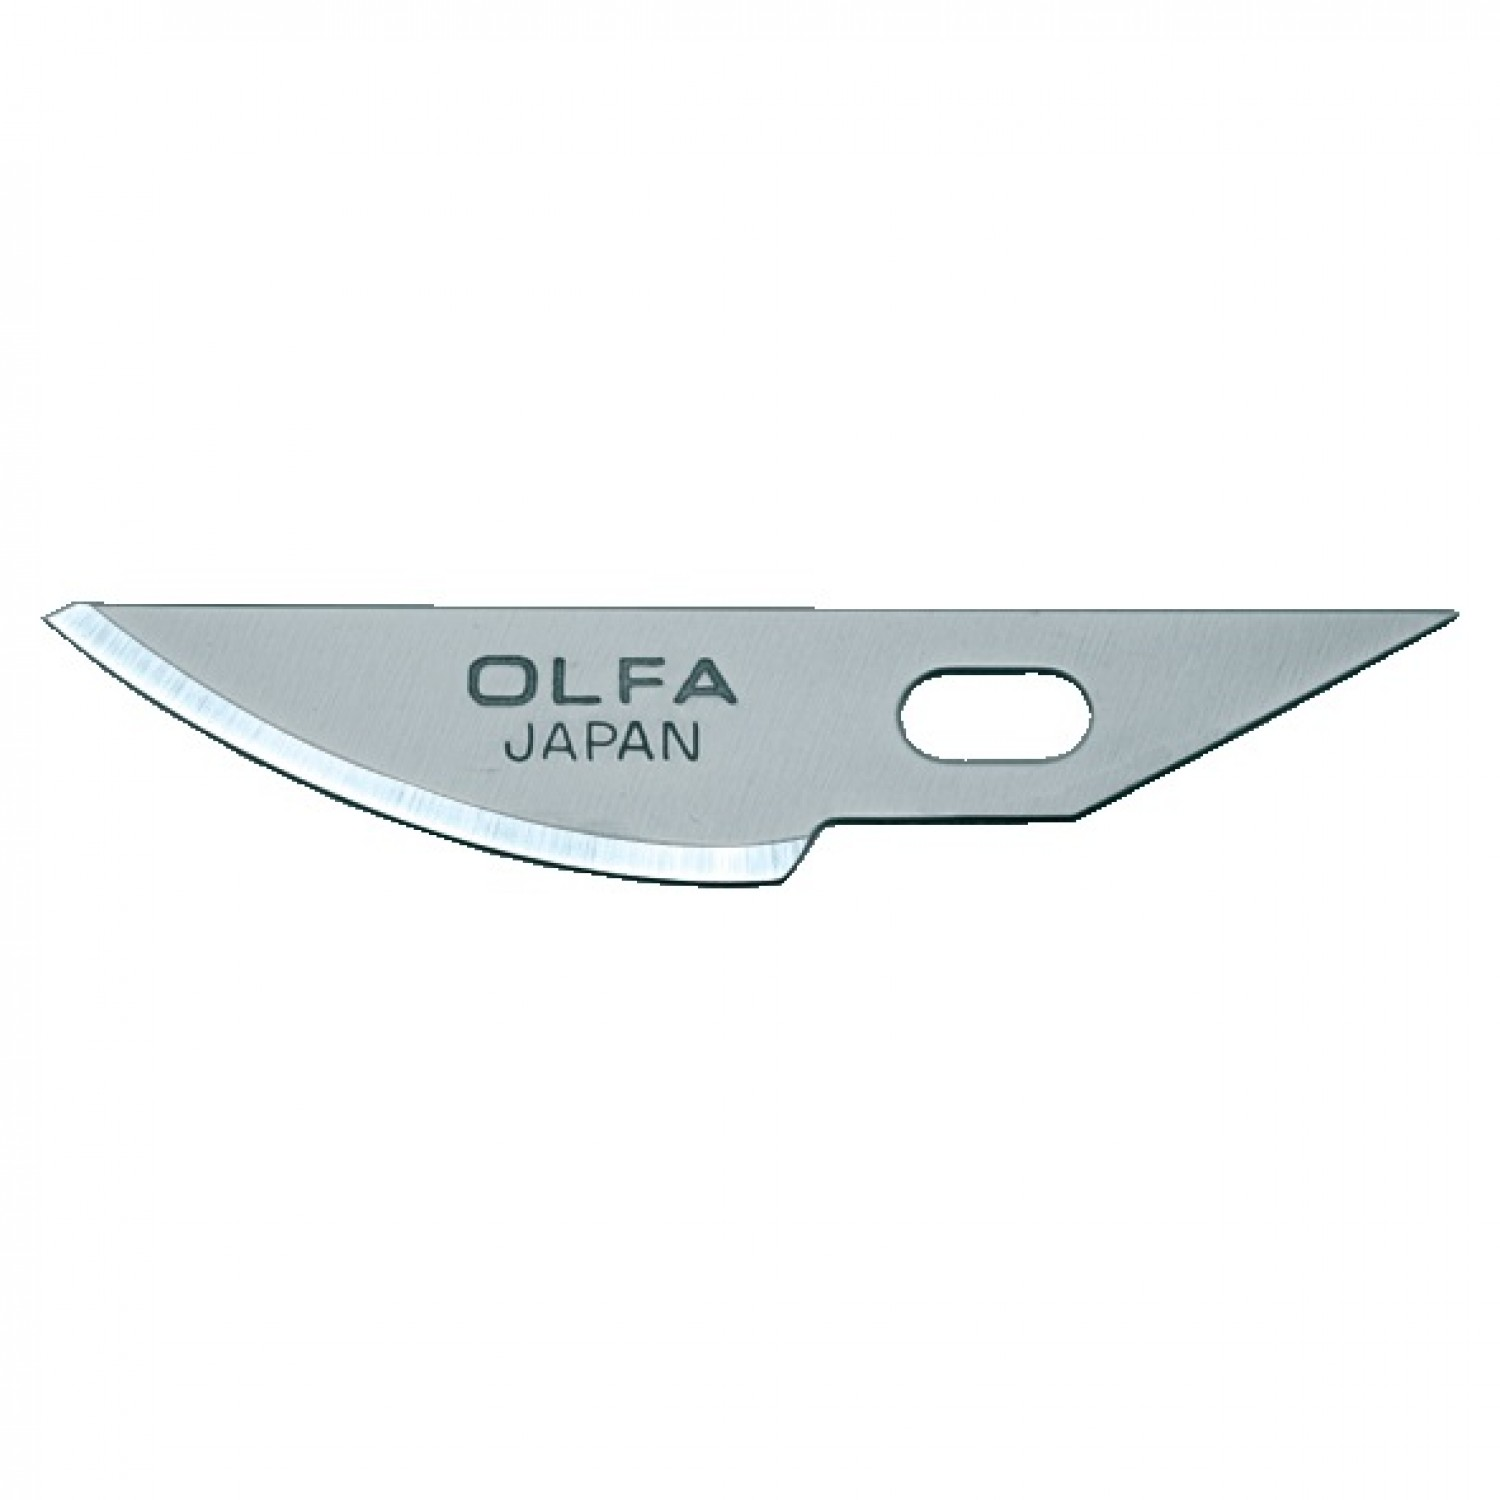 Olfa KB4-R/5 Curved Carving Blades 5pk